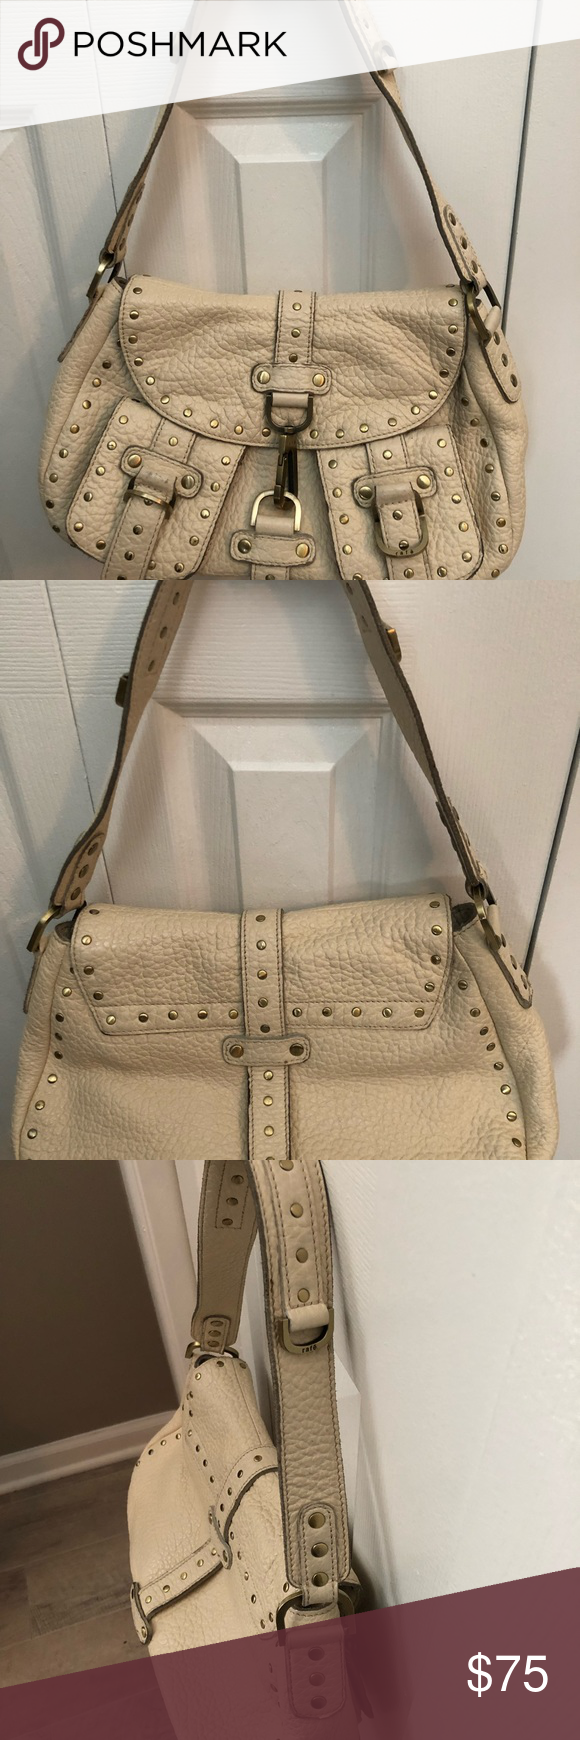 bf9e68faa7 Rafe New York Vintage Shoulder Bag Rafe New York Vintage Shoulder Bag Creme  with gold studs Like new Dust bag included Smoke and pet free home  Purchased at ...